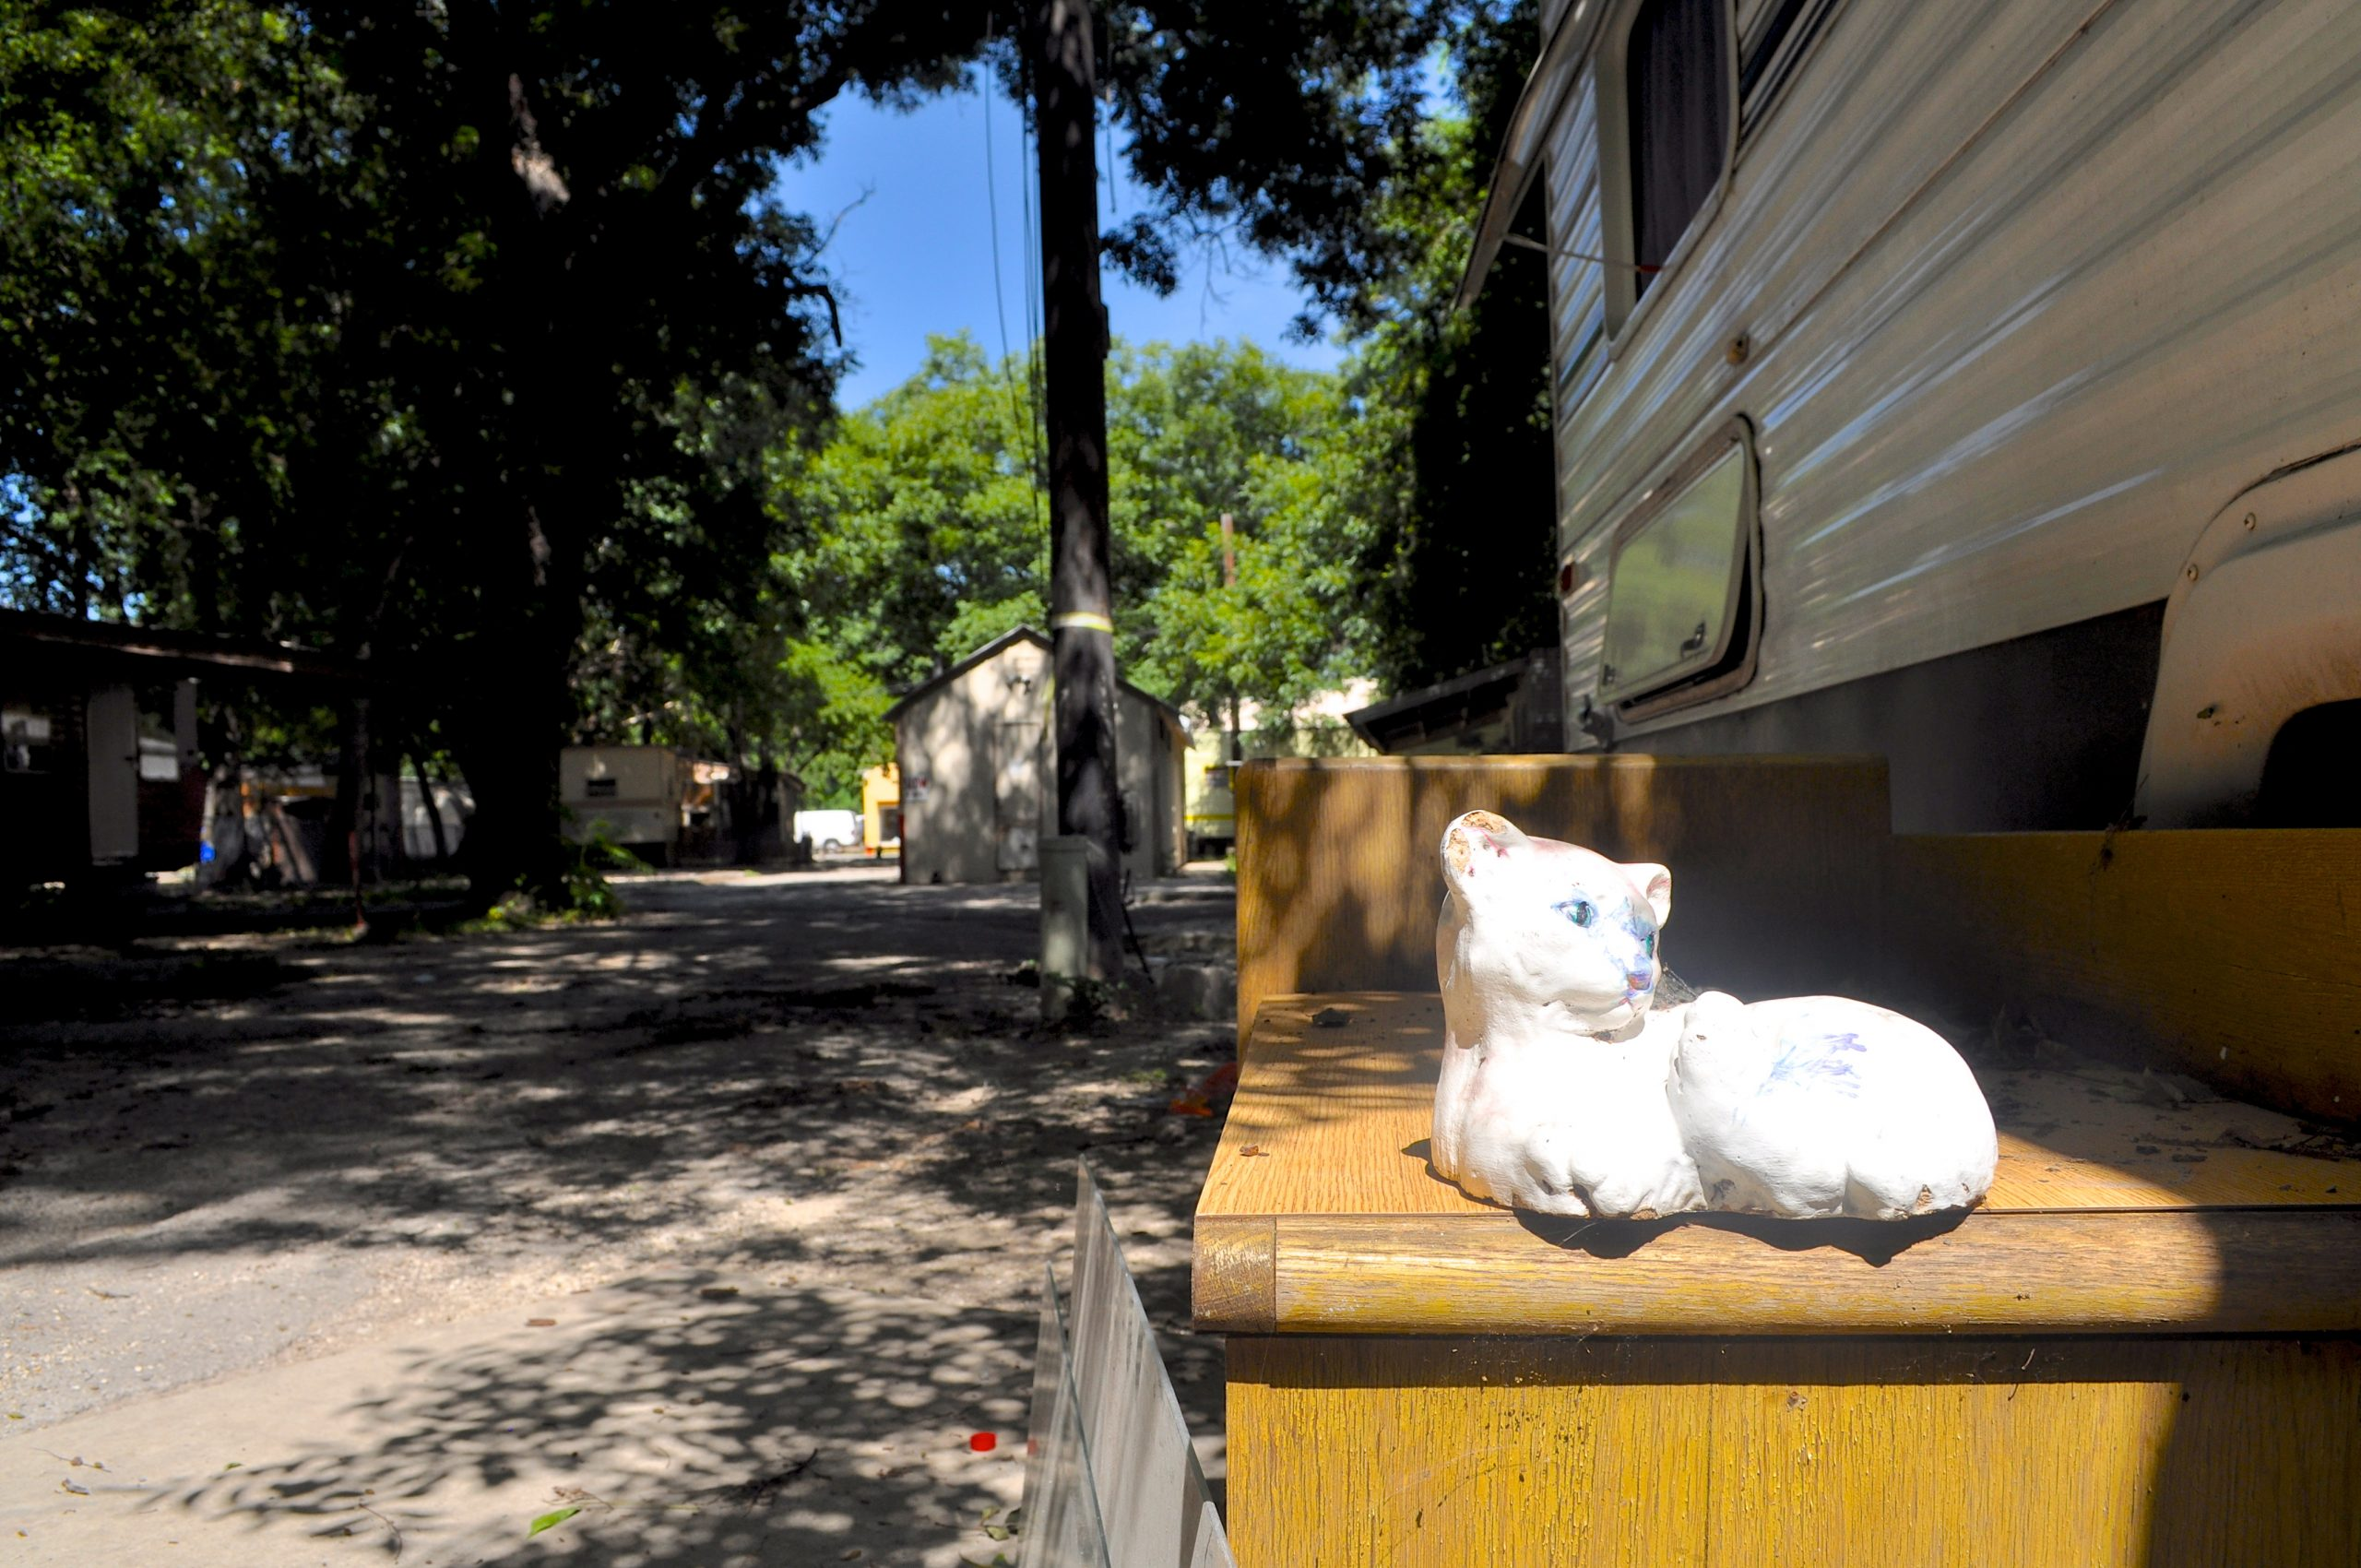 A ceramic cat lies in wait for its abandoned trailer owners at the new Roosevelt Avenue development site. Photo by Iris Dimmick.